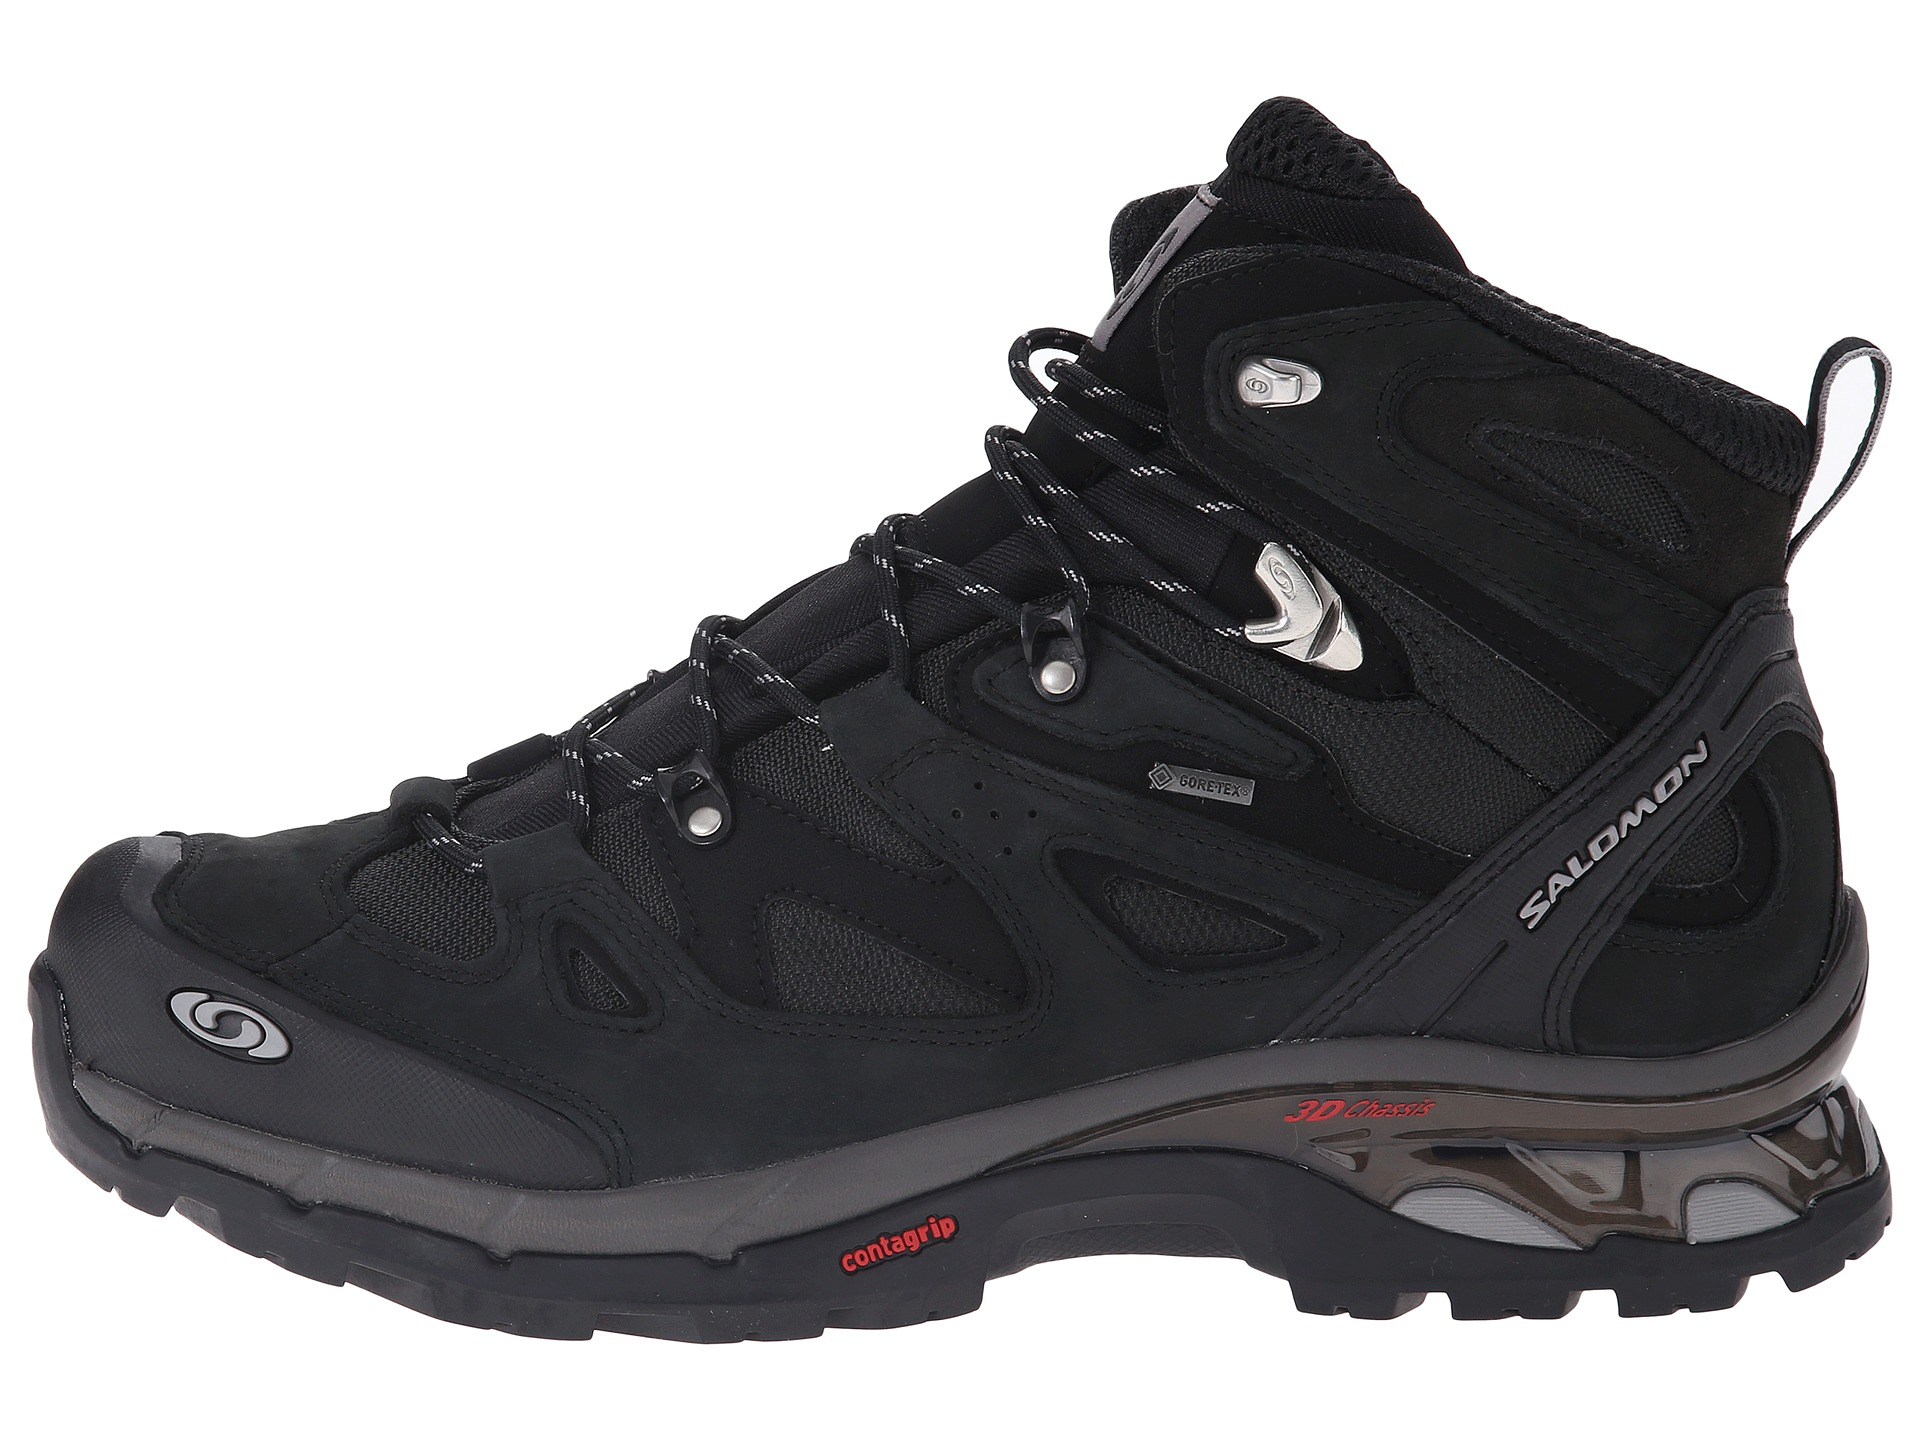 manteaux salomon - Salomon Comet 3D GTX? - Zappos.com Free Shipping BOTH Ways